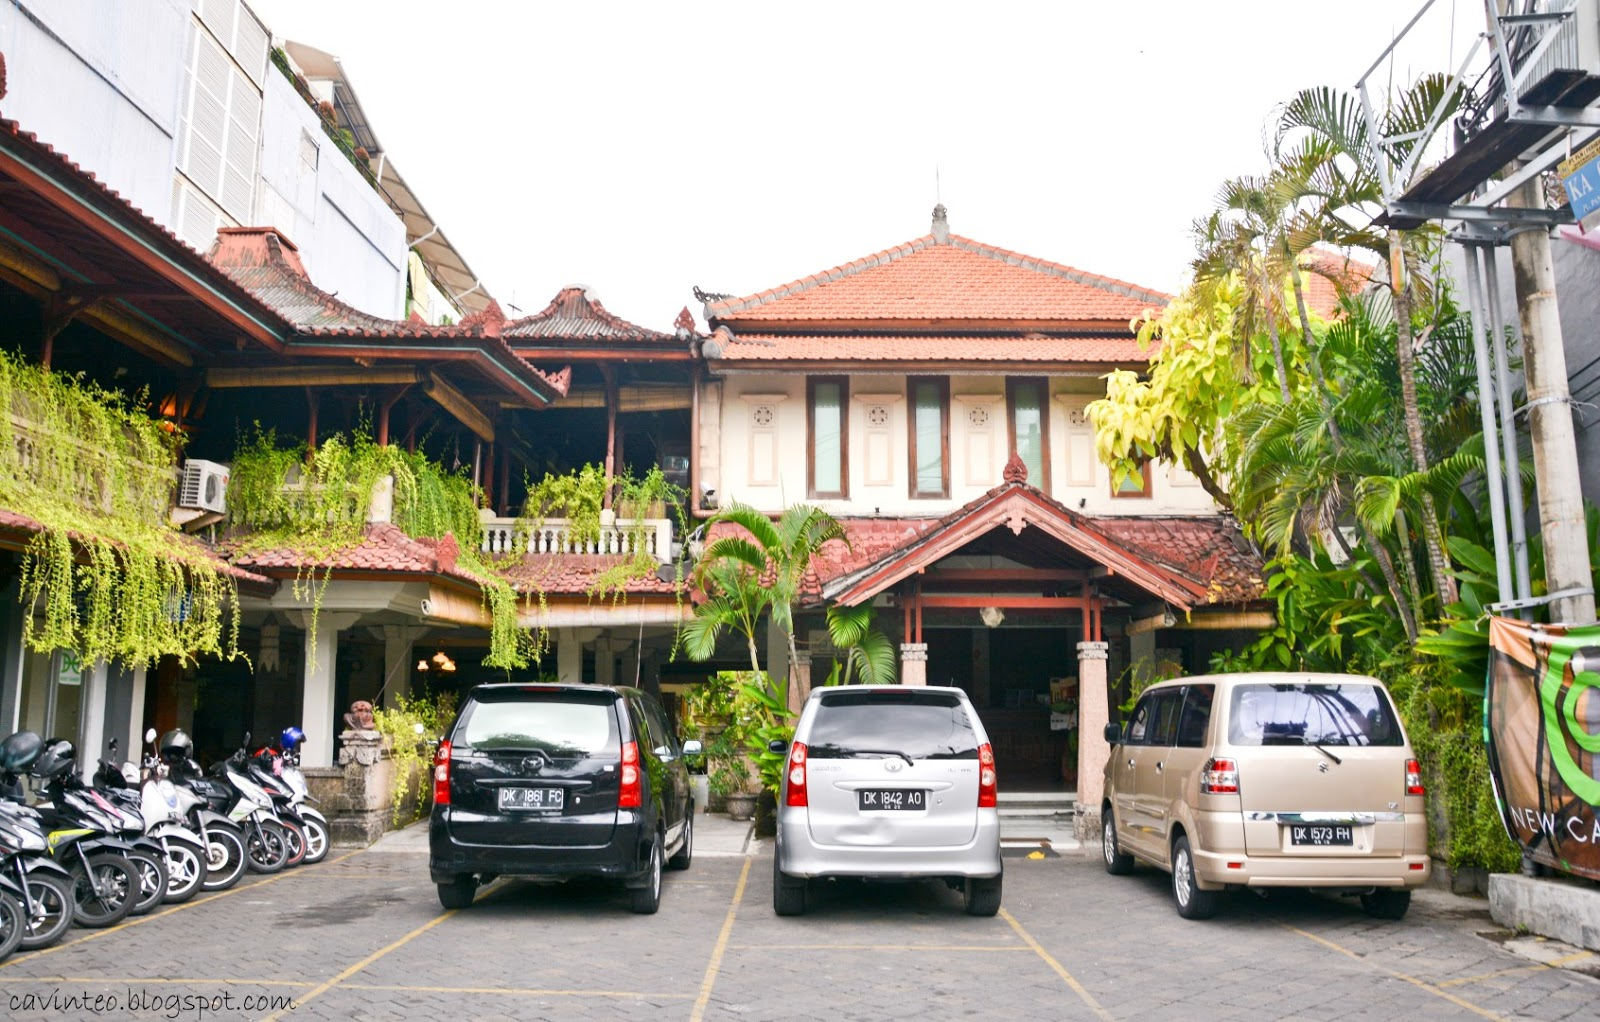 Entree Kibbles: Leisure Walking in Kuta - Jl Pantai Kuta